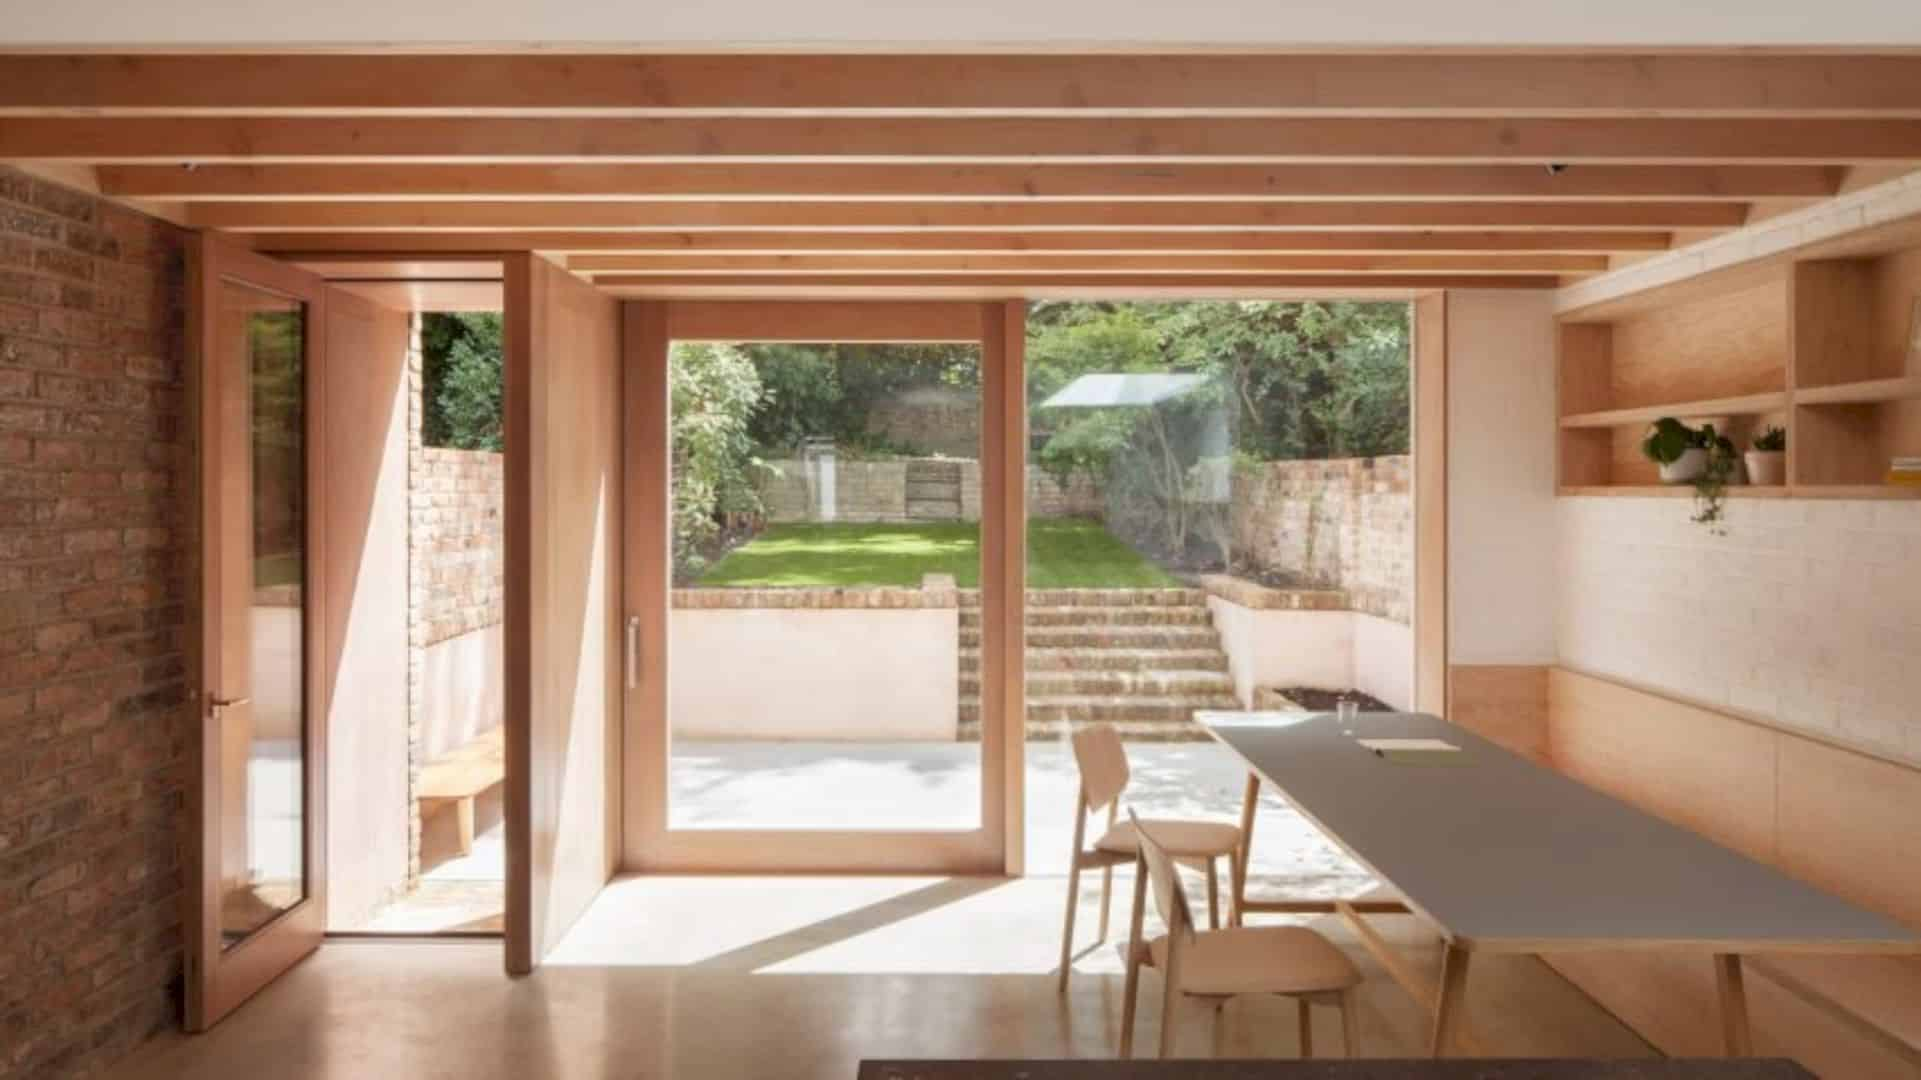 A Ground Floor Renovation Of A Victorian Terraced House In London 8